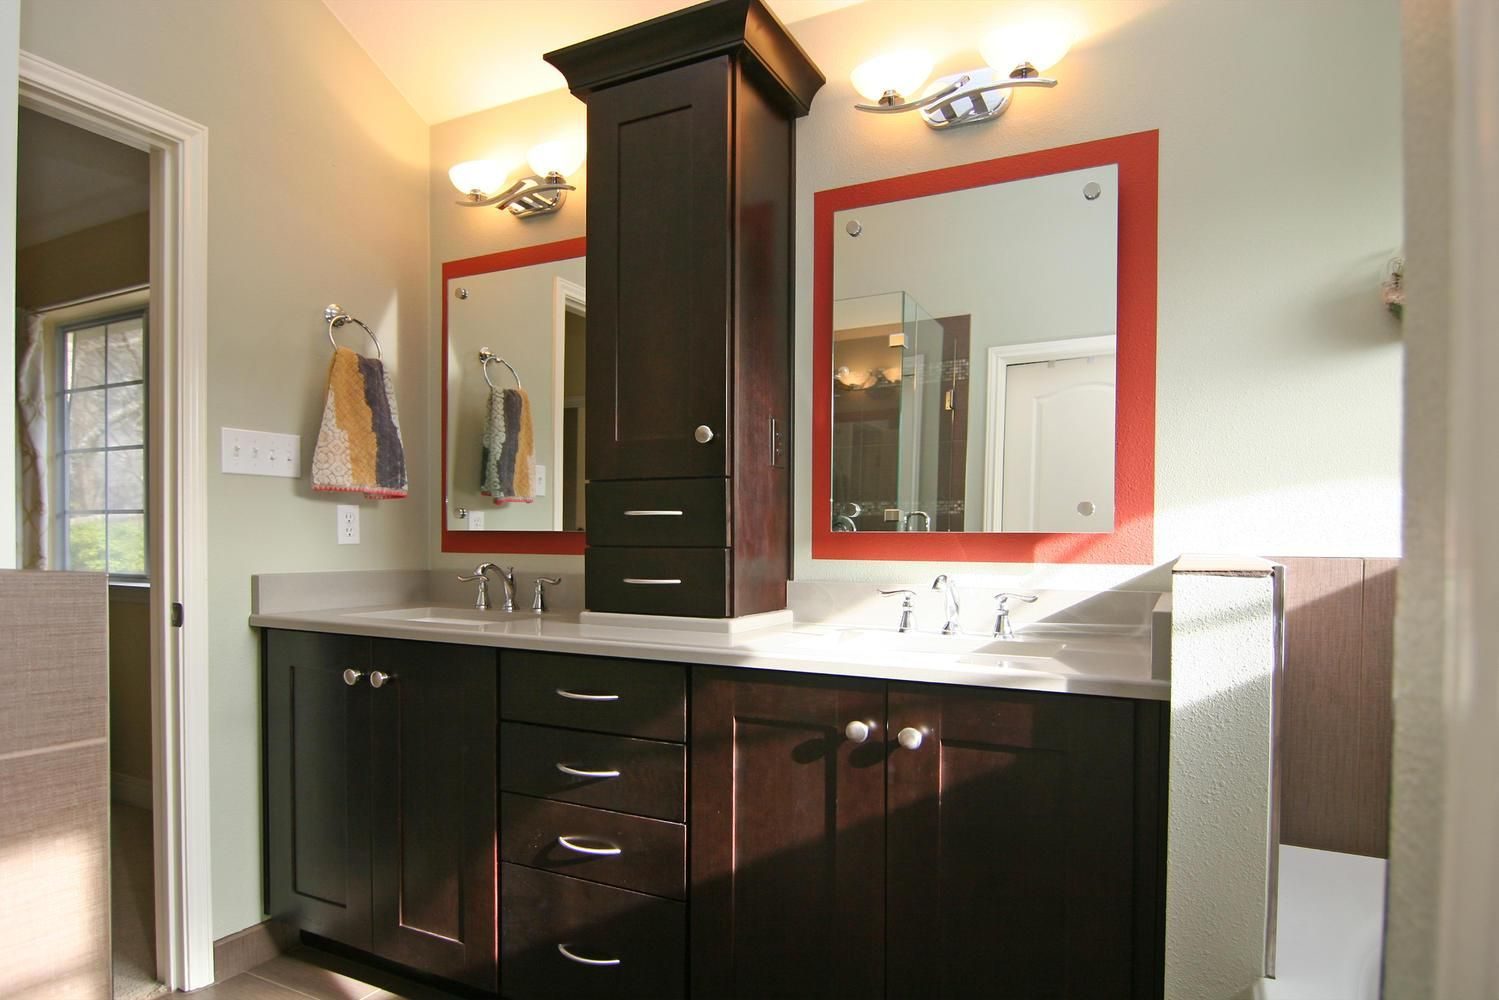 His And Her Sinks With Linen Tower Bathroom Cabinetry Small Bathroom Cabinets White Bathroom Cabinets